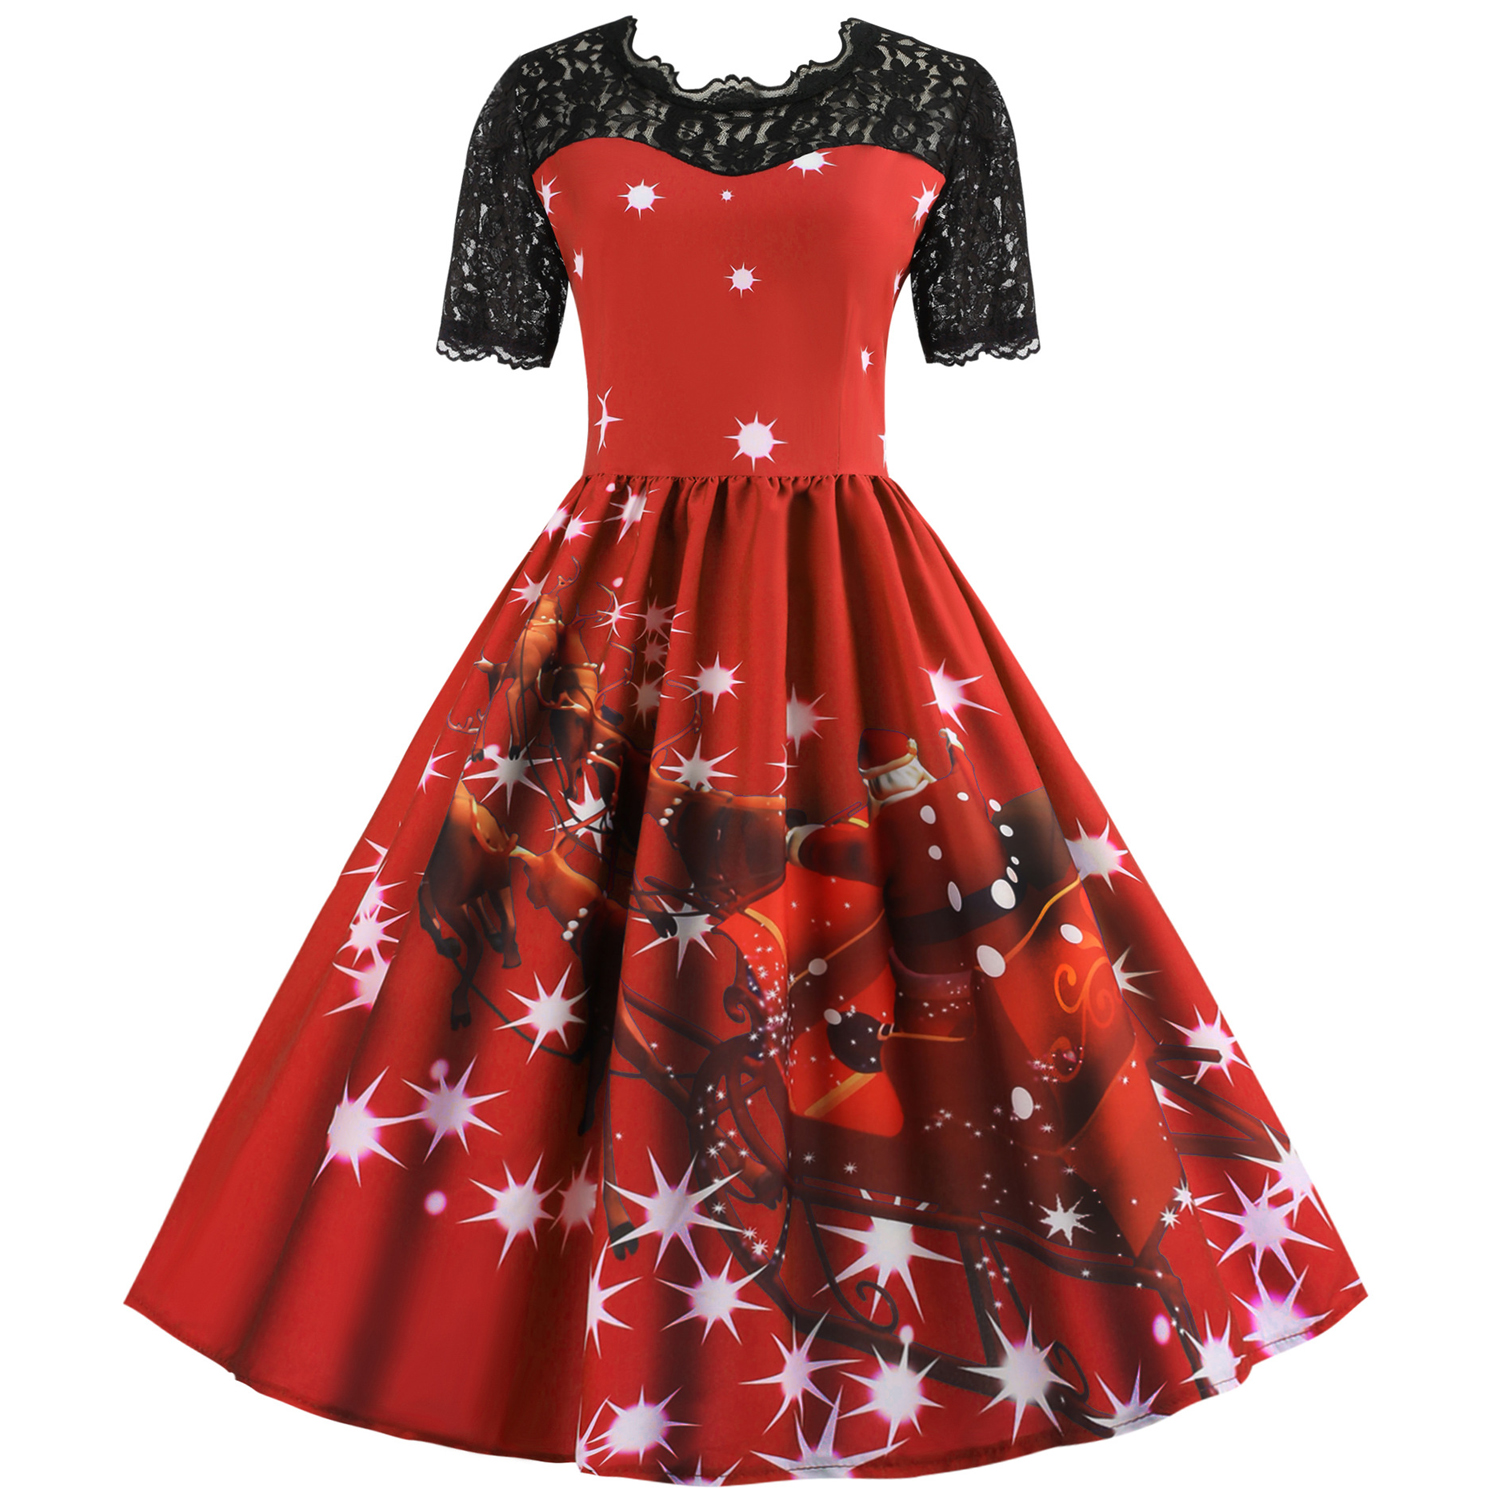 Womens Christmas Gifts.Us 11 01 48 Off Womens Christmas Gifts Santa Claus Print Lace Retro Short Sleeve Swing Party Dresses In Dresses From Women S Clothing On Aliexpress